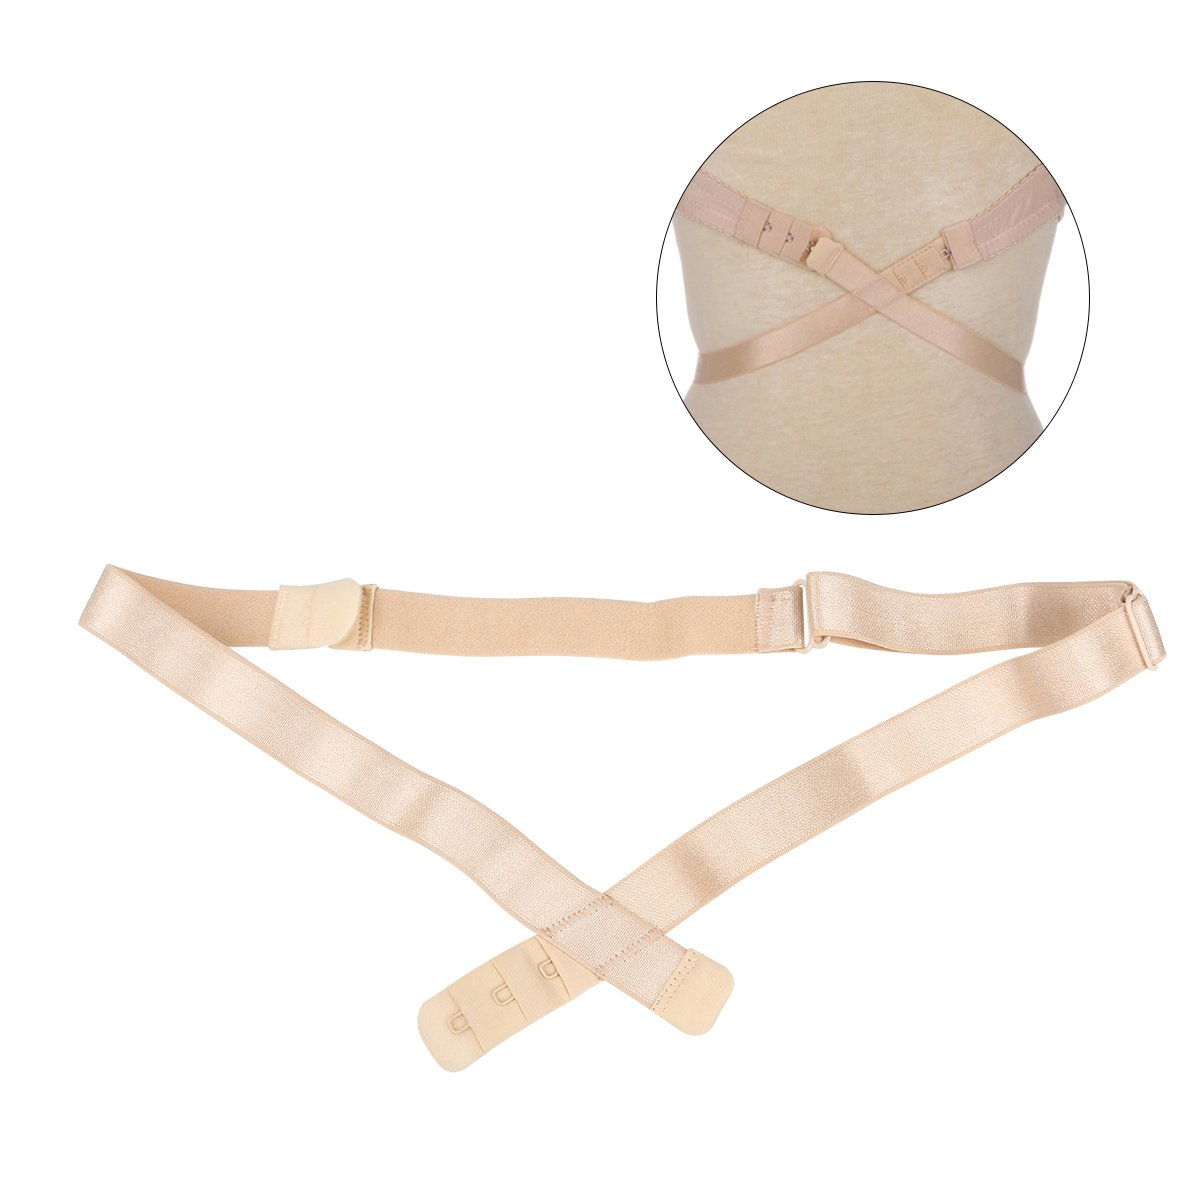 OULII Bra Strap Converters Low Back Extender with 3 Hooks For Women (Skin-color) 6R8154414X3C9Y5108